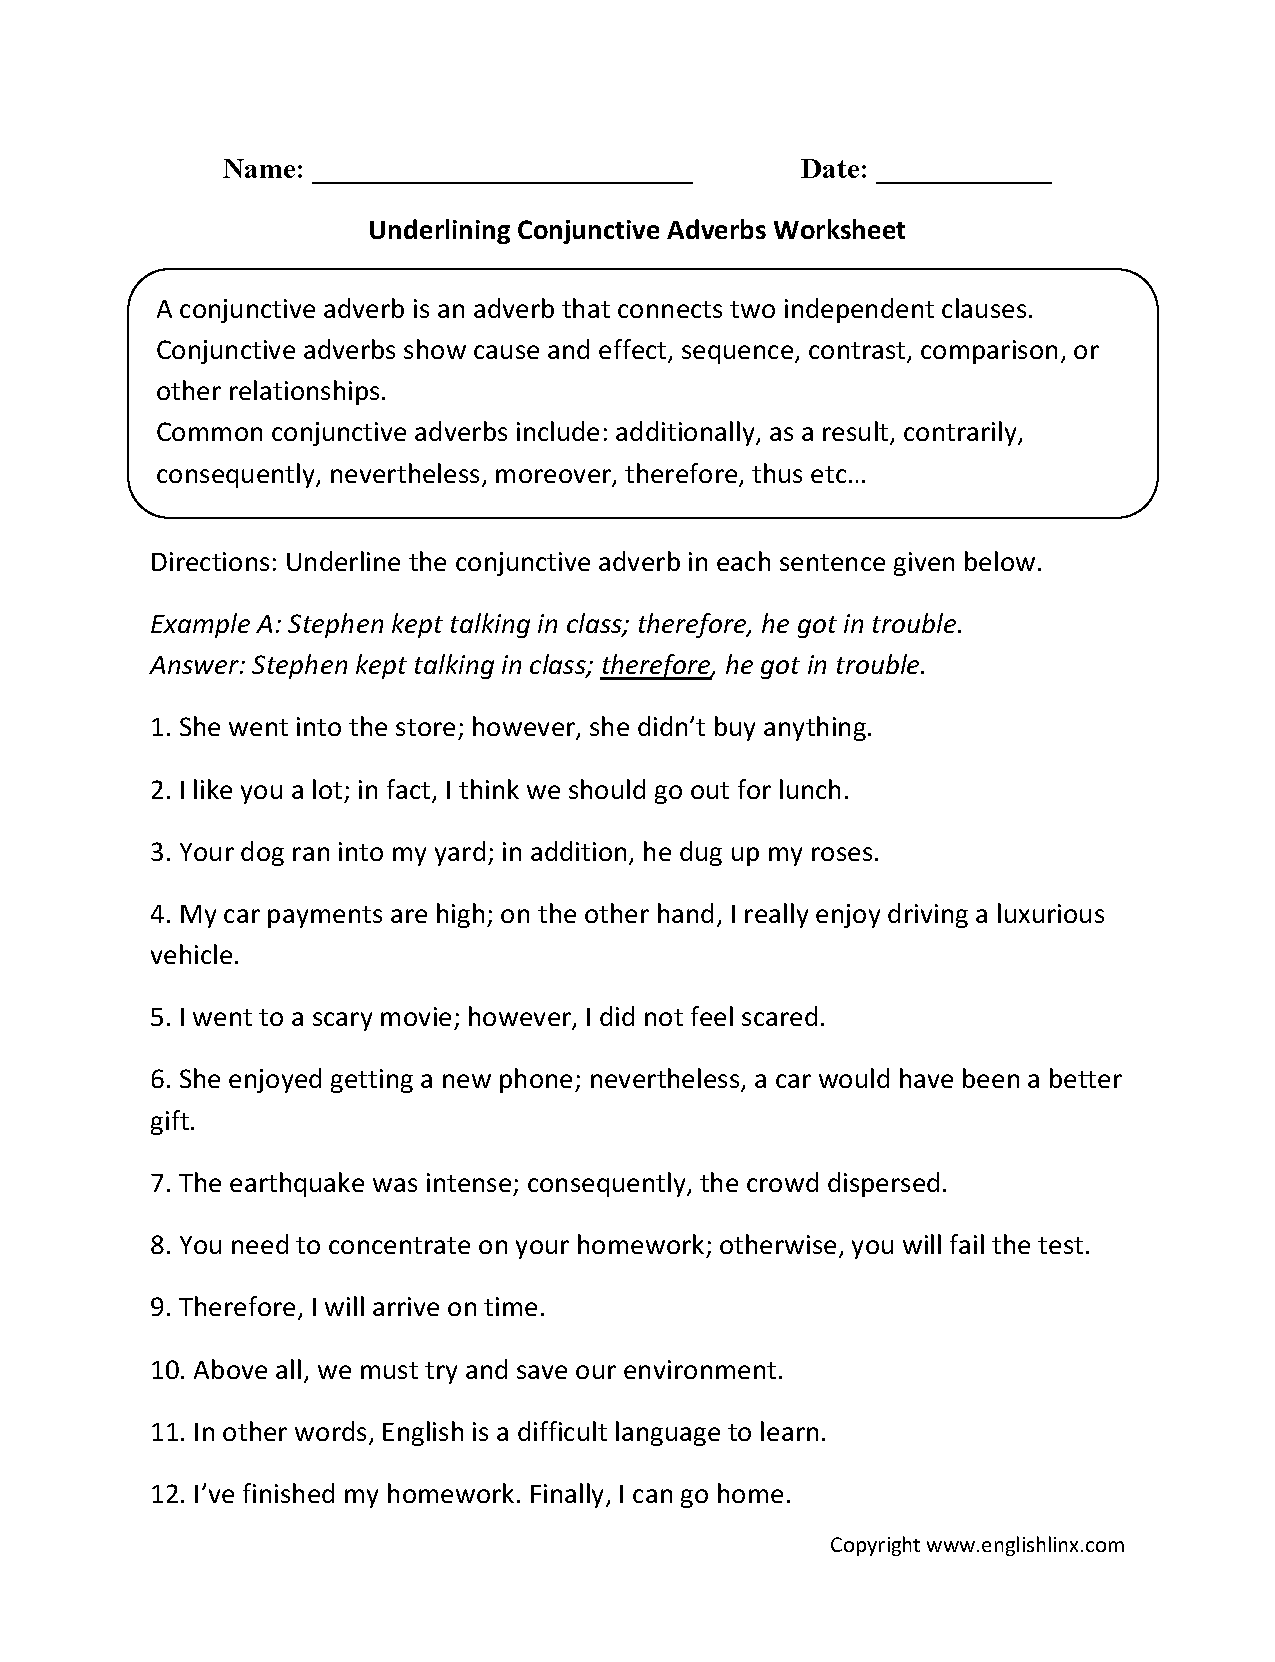 Weirdmailus  Sweet Englishlinxcom  Conjunctions Worksheets With Great Worksheet With Delightful Passive Aggressive And Assertive Communication Worksheets Also Ordering Paragraphs Worksheet In Addition Box And Whisker Plot Worksheet With Answers And Printable Writing Worksheets For St Grade As Well As Home Inventory Worksheet Additionally Classifying Triangles By Sides And Angles Worksheet From Englishlinxcom With Weirdmailus  Great Englishlinxcom  Conjunctions Worksheets With Delightful Worksheet And Sweet Passive Aggressive And Assertive Communication Worksheets Also Ordering Paragraphs Worksheet In Addition Box And Whisker Plot Worksheet With Answers From Englishlinxcom